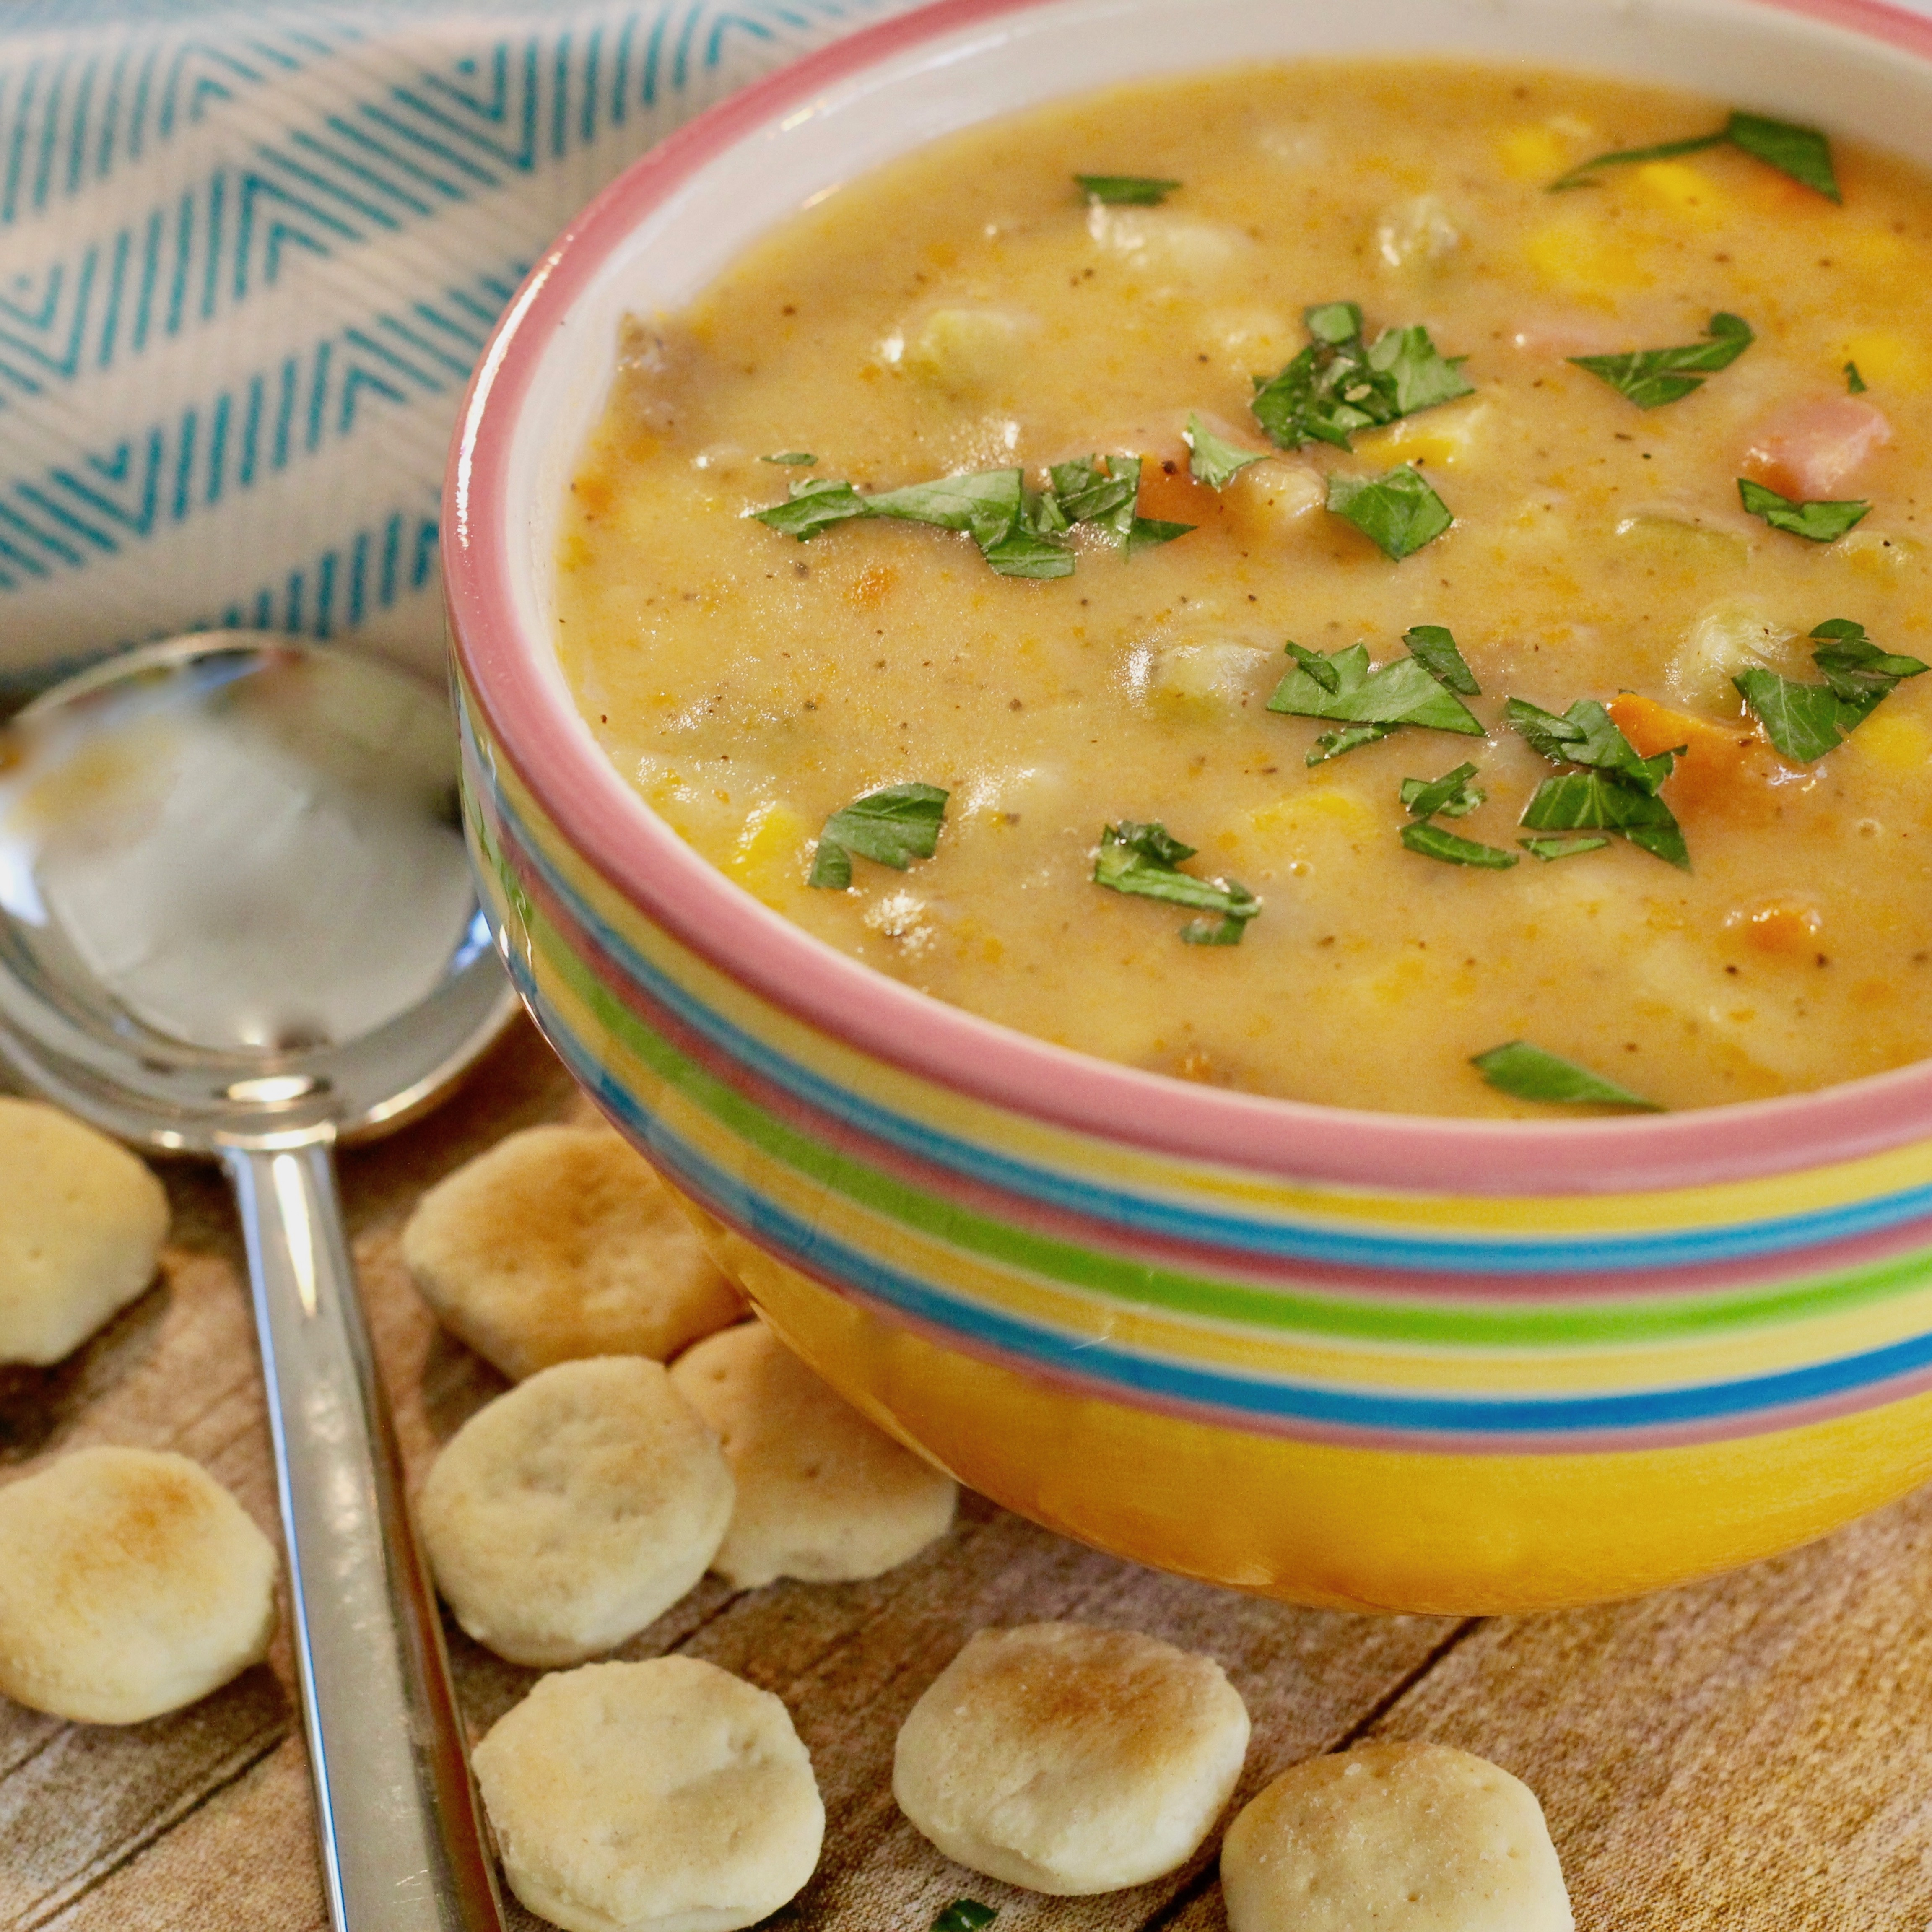 Potato Soup or Chowder